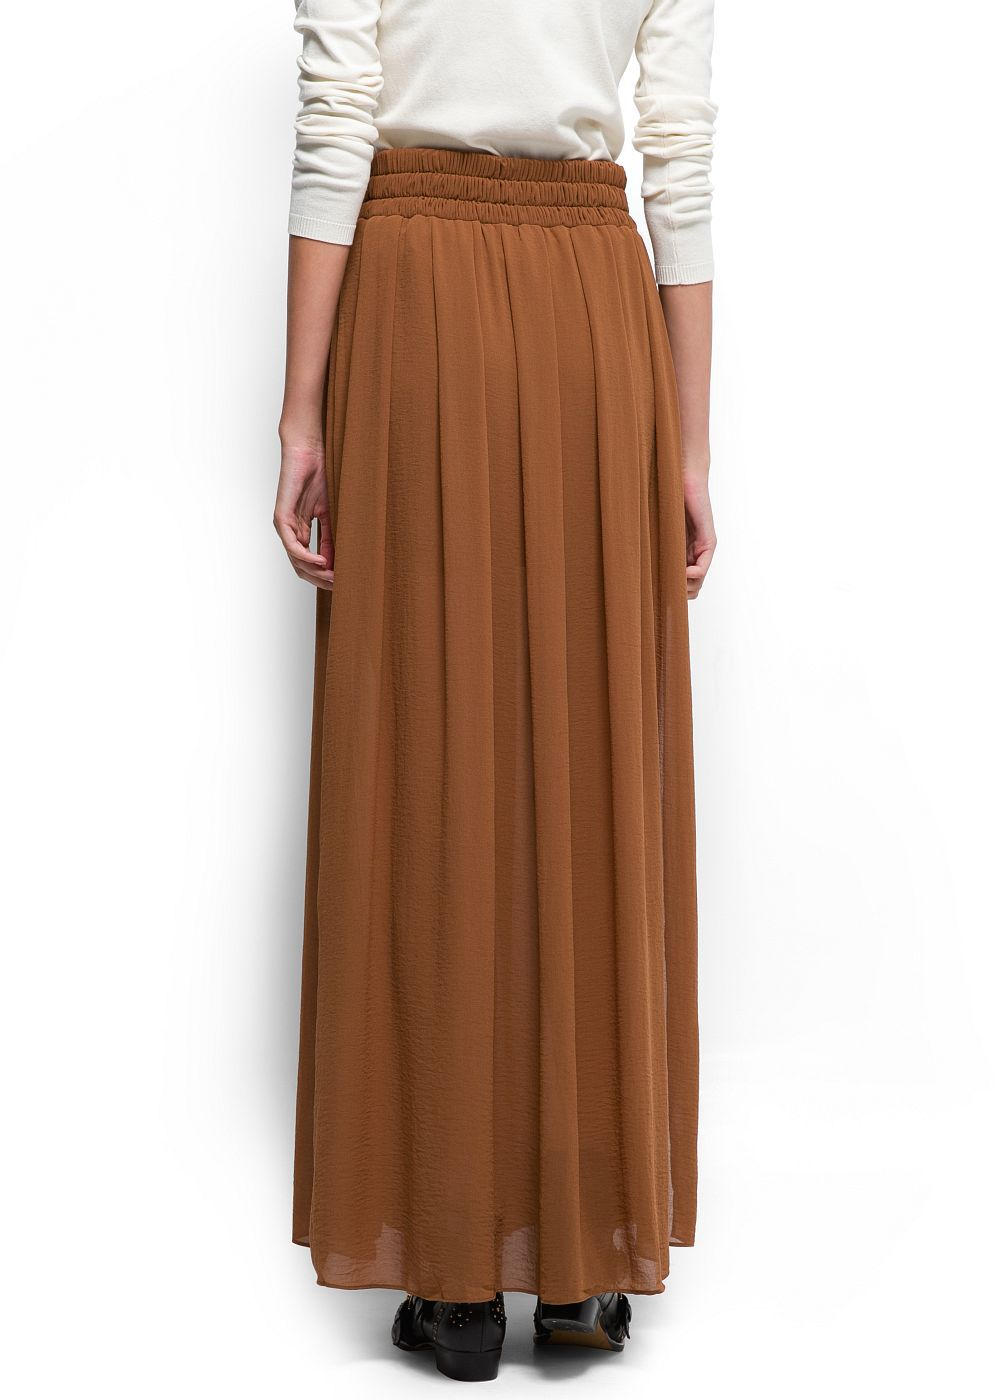 Long Brown Skirt - Skirts